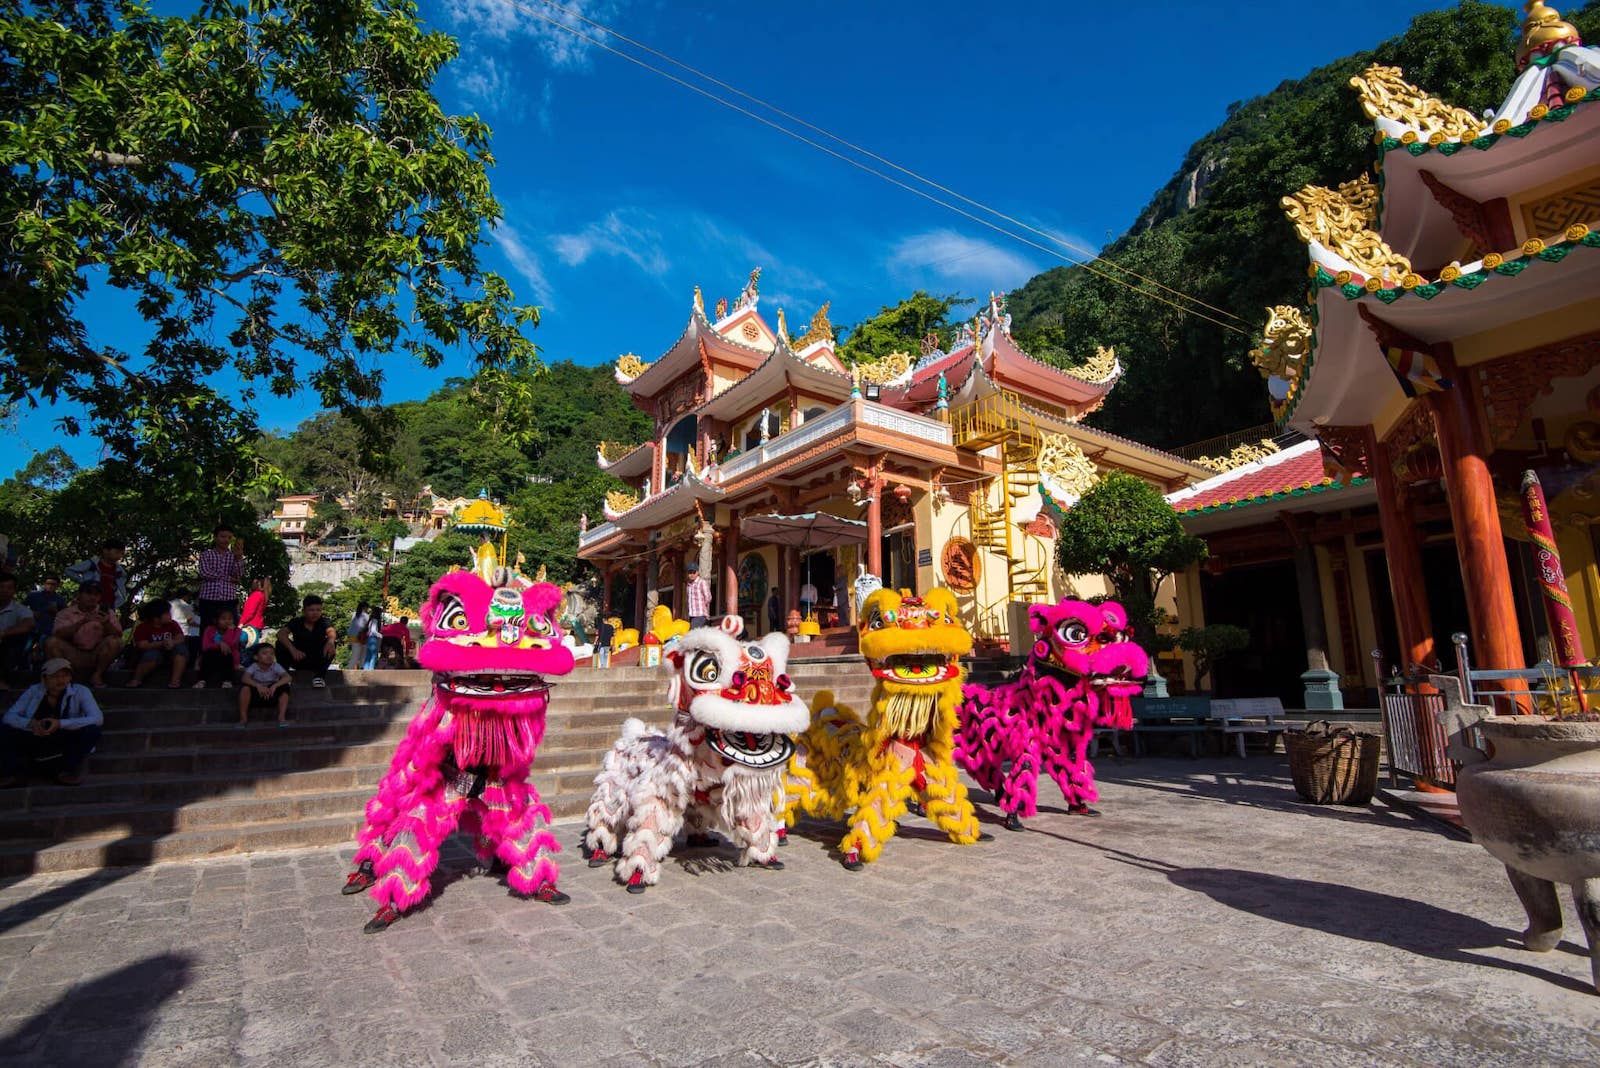 Image of a festival at Sun World BaDen Mountain in Vietnam